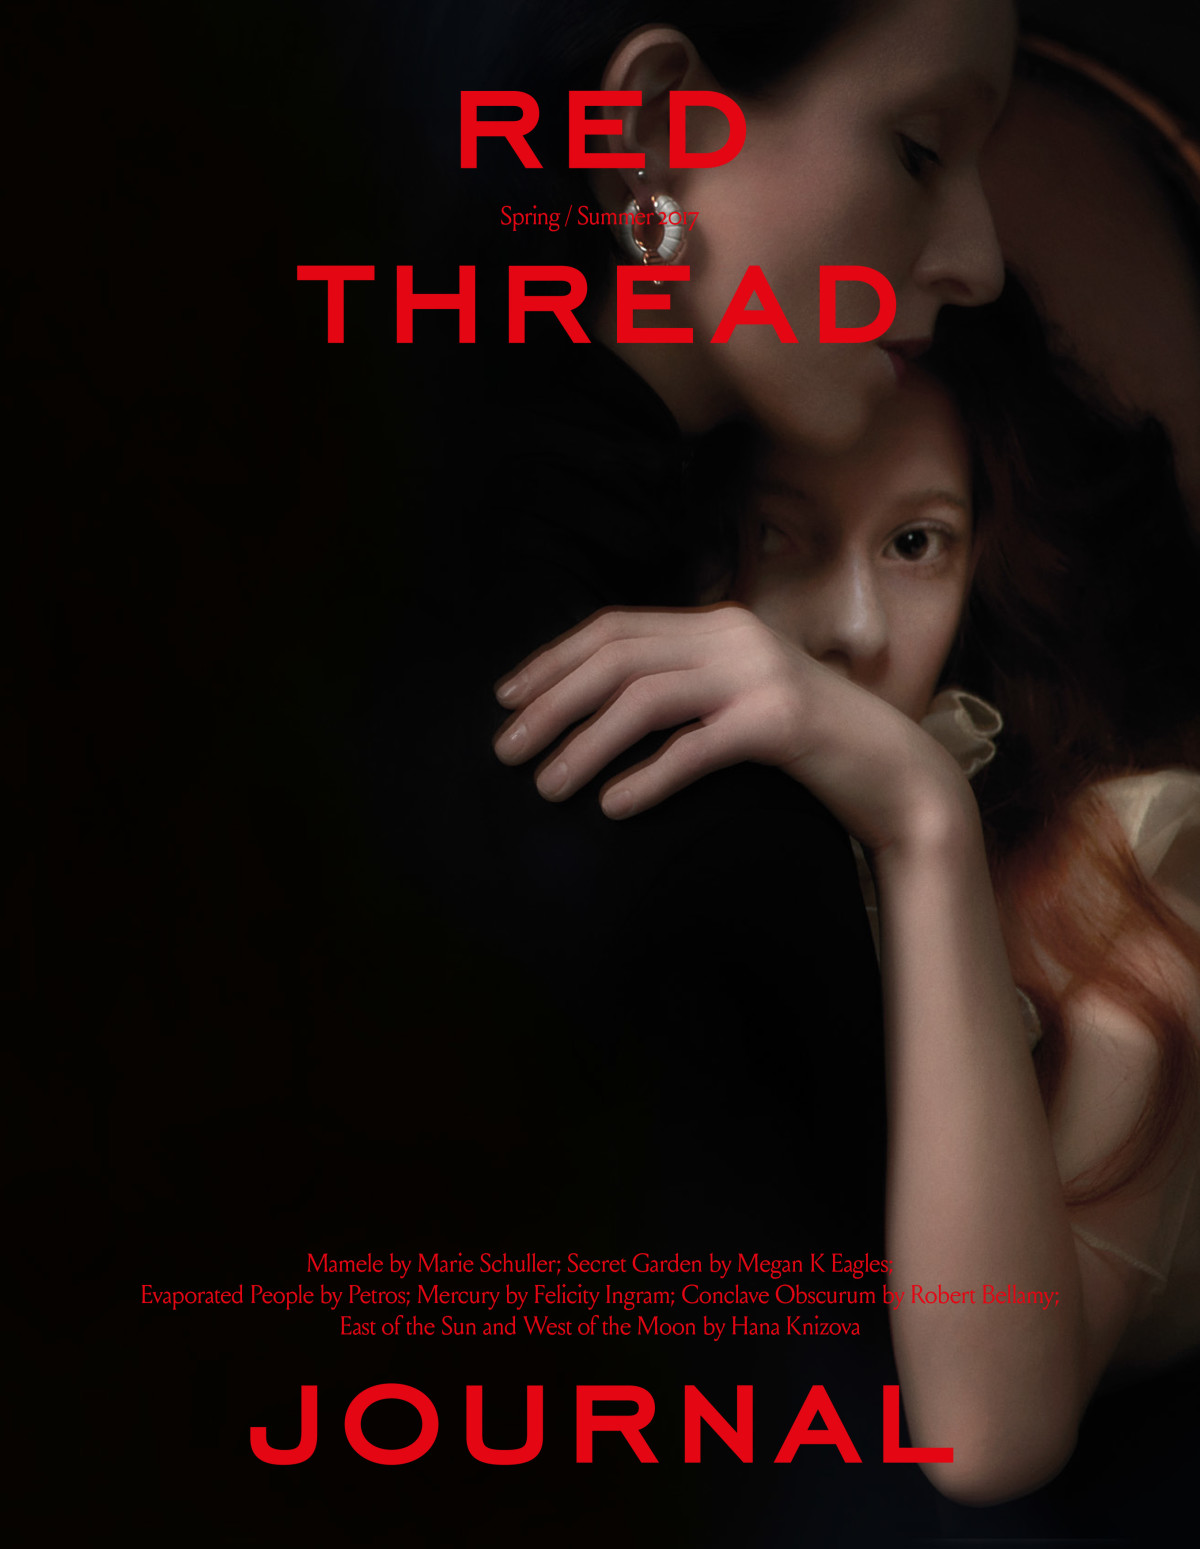 red thread journal cover story, Mamele by Marie schuller, twins, barnes twins, surrealism in fashion, Mar Gonzalez, Genevieve Welsh, Serge Lutens inspired Makeup, Sureal makeup